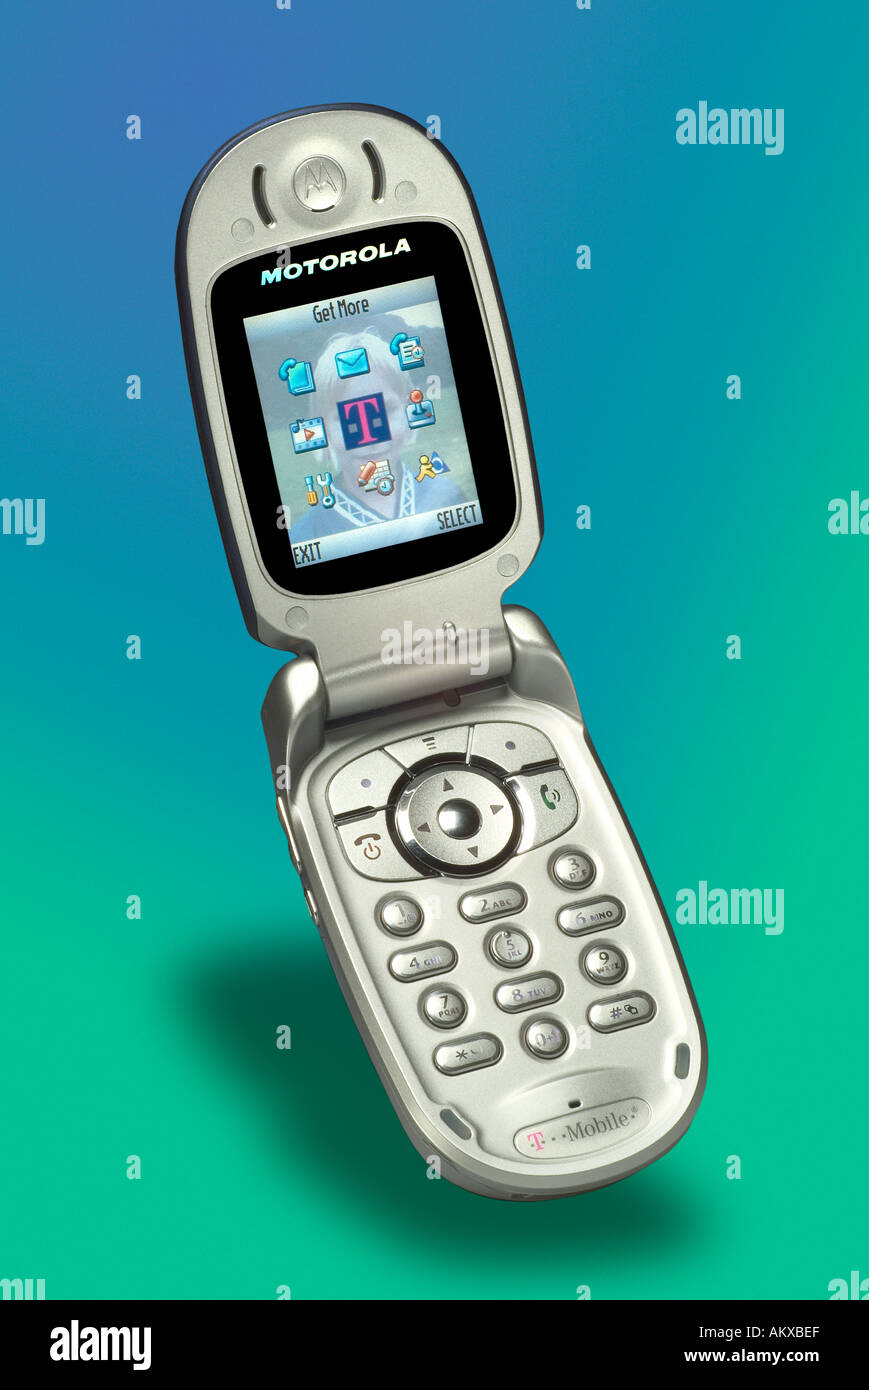 Cell Phone - Stock Image